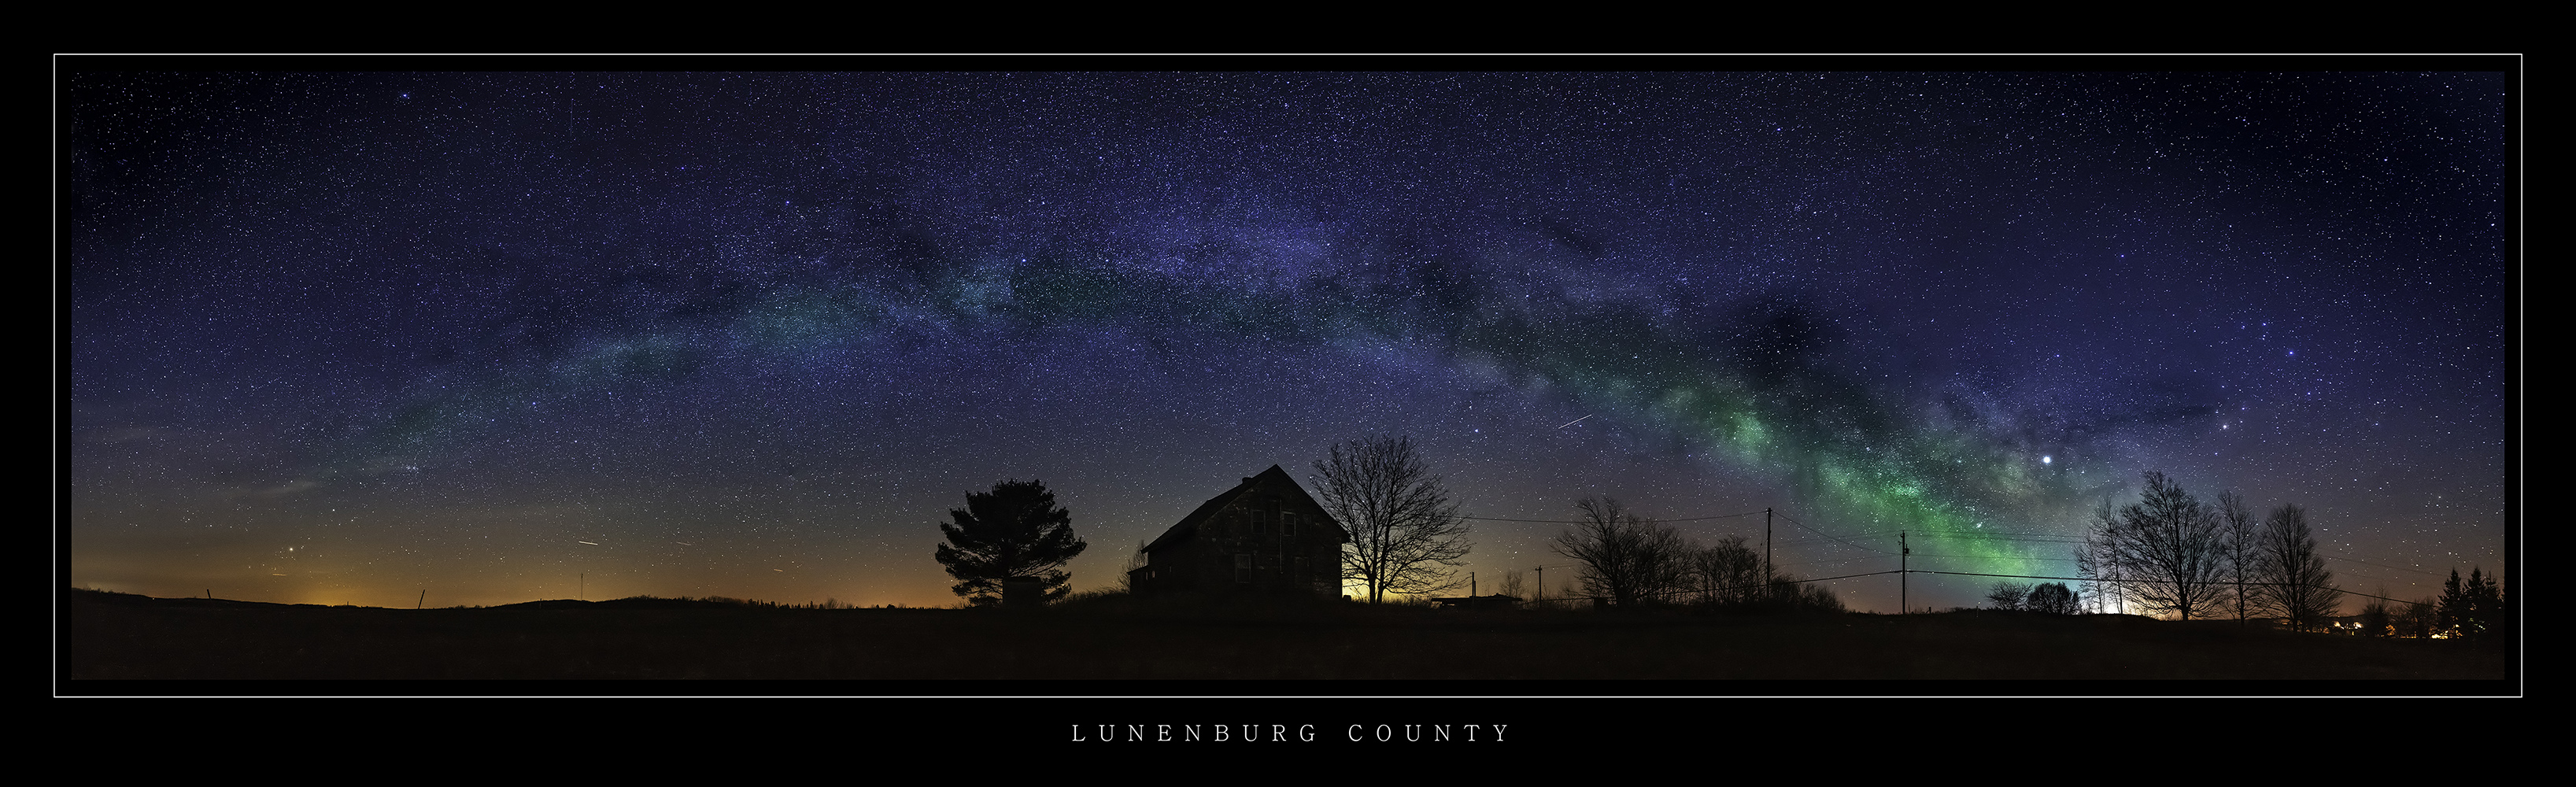 Night time panoramic landscape picture of the Milky Way Galaxy over a silhouetted abaondoned house and trees in Lunenburg County Nova Scotia